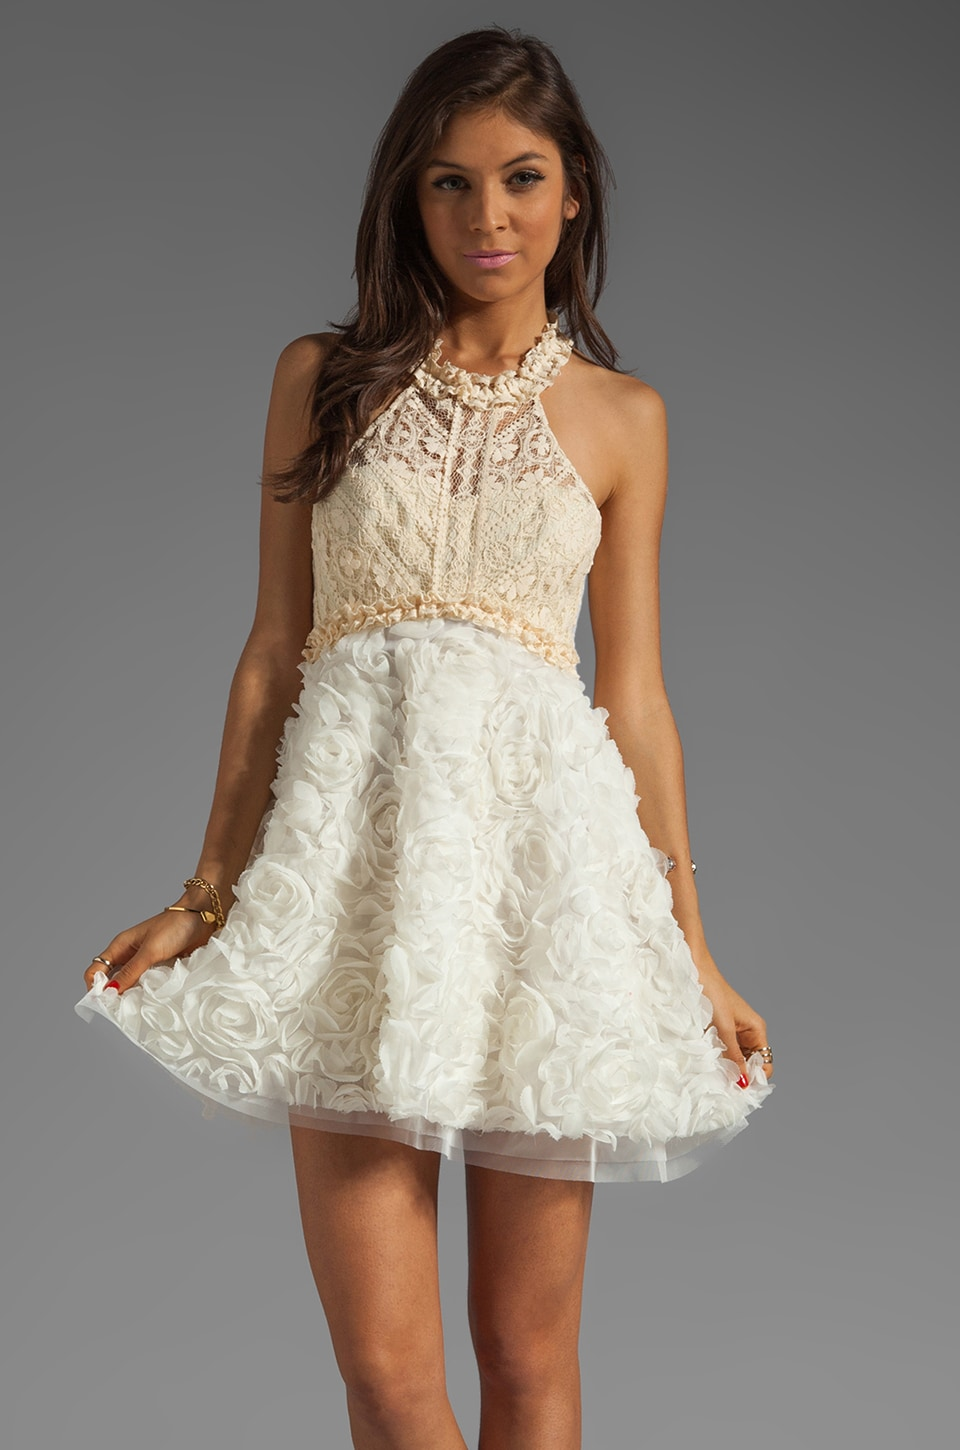 Free People Babydoll Bouquet Party Dress in Ivory